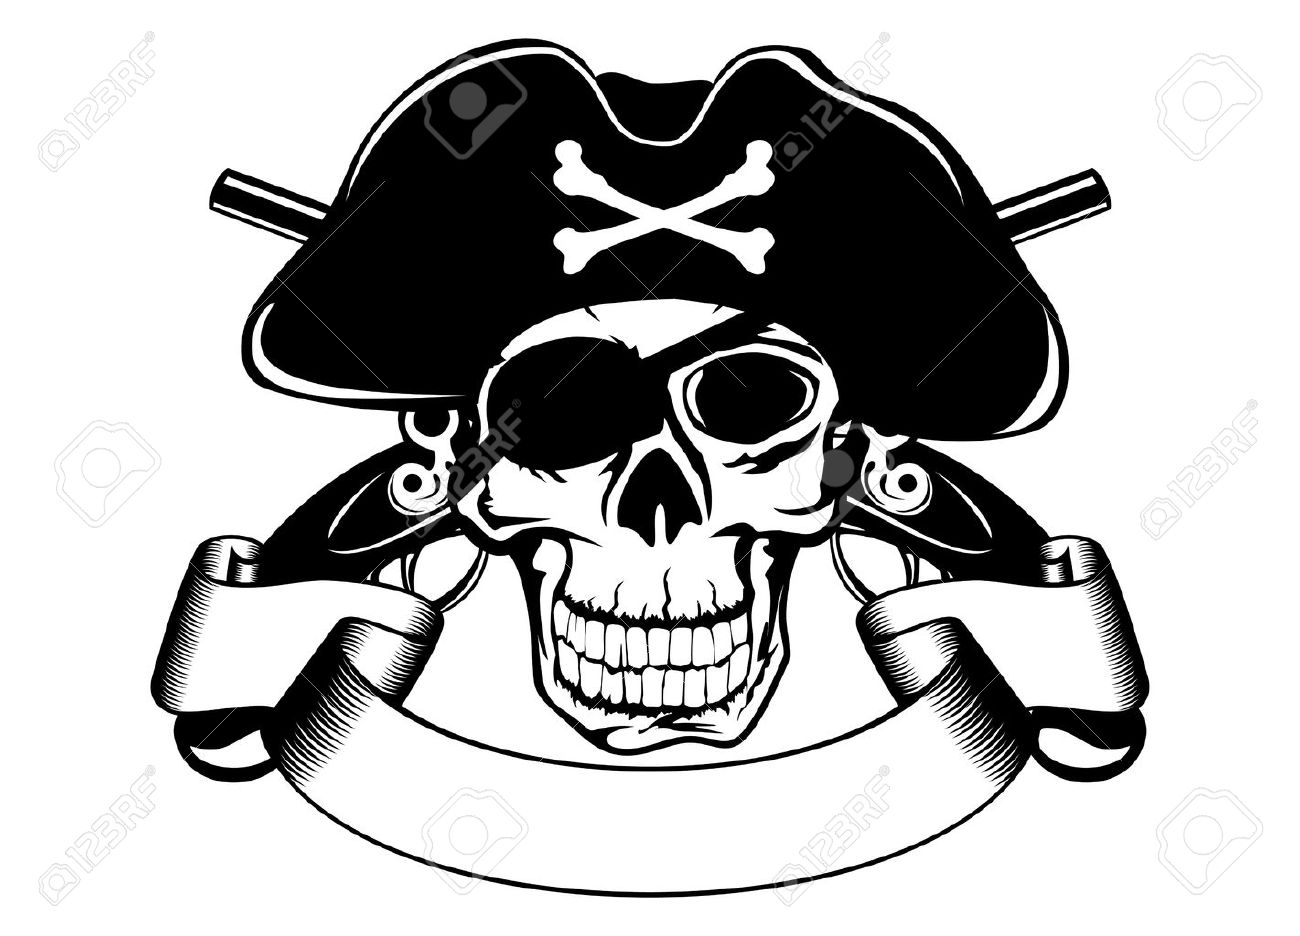 Pirate Hat Drawing The image of piracy skull